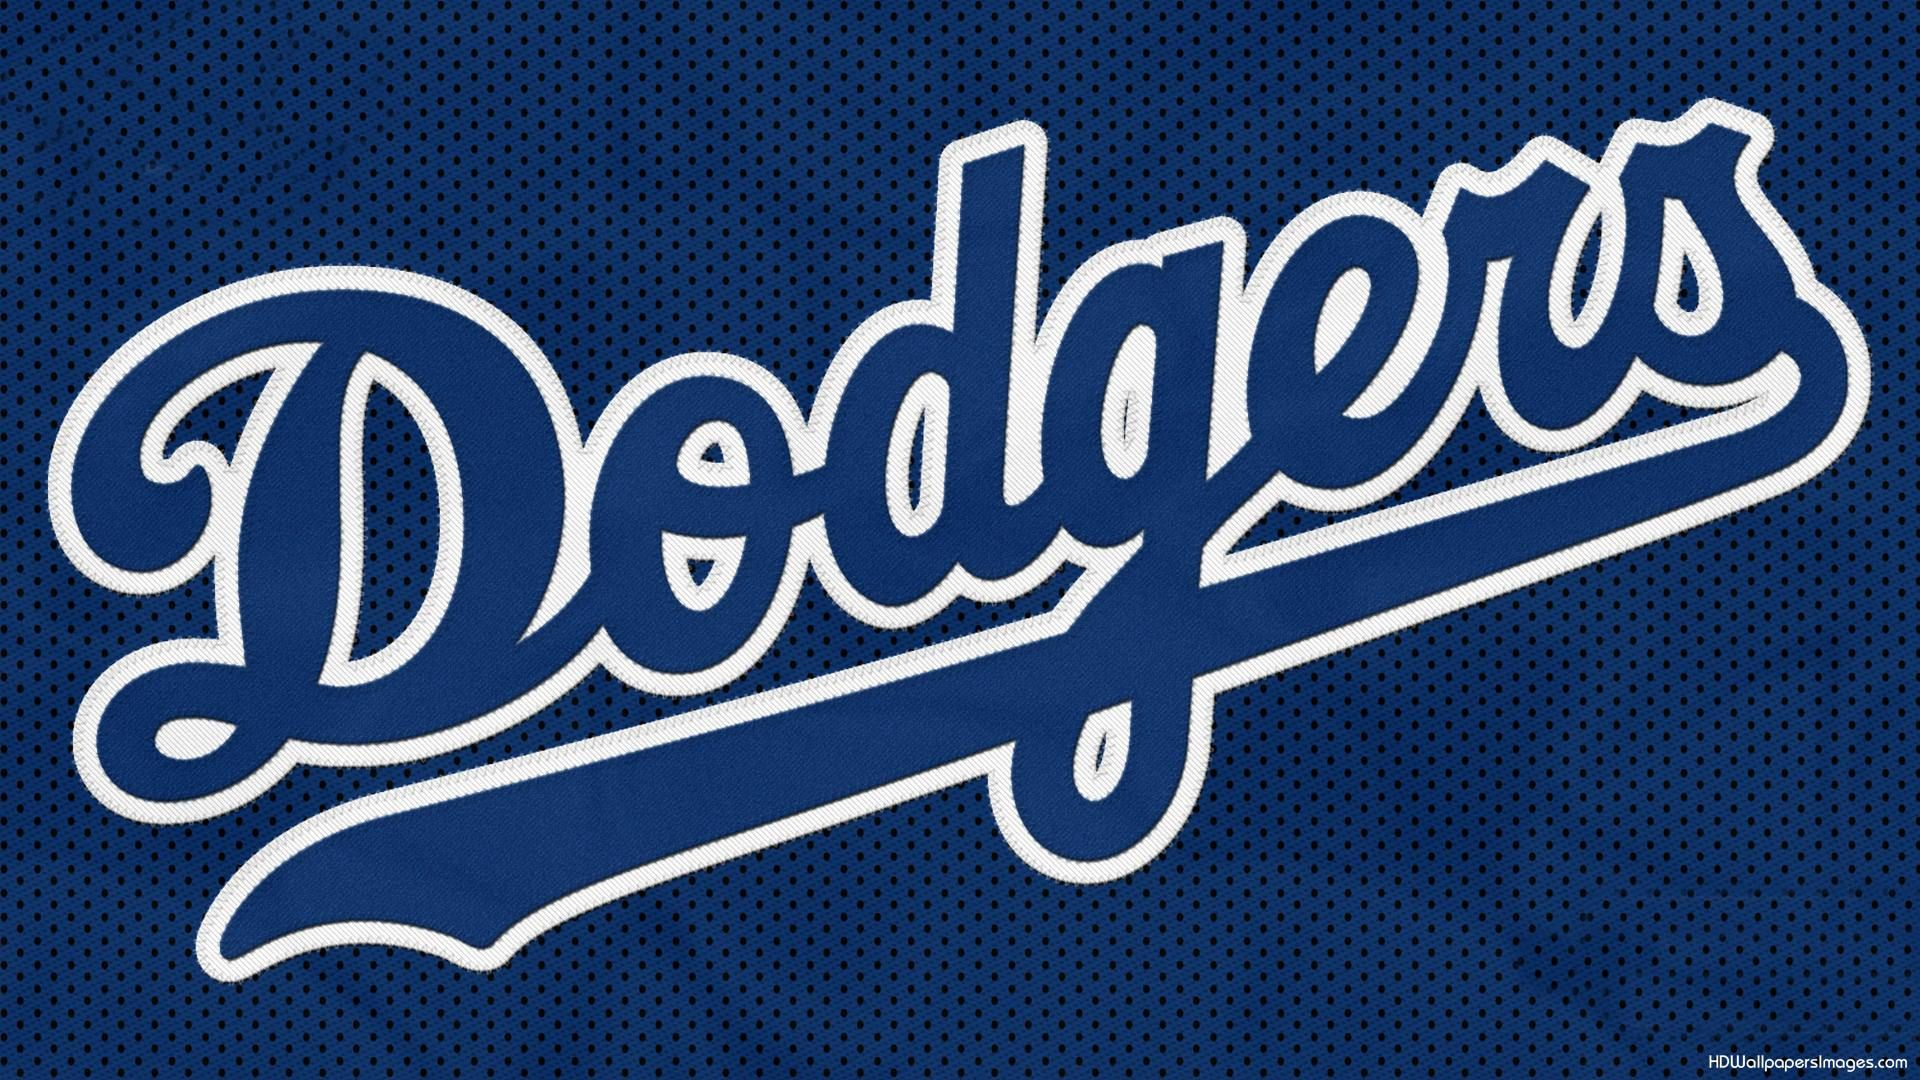 Los Angeles Dodgers Logo Hd Wallpaper Los Angeles Dodgers Logo Los Angeles Dodgers Dodgers